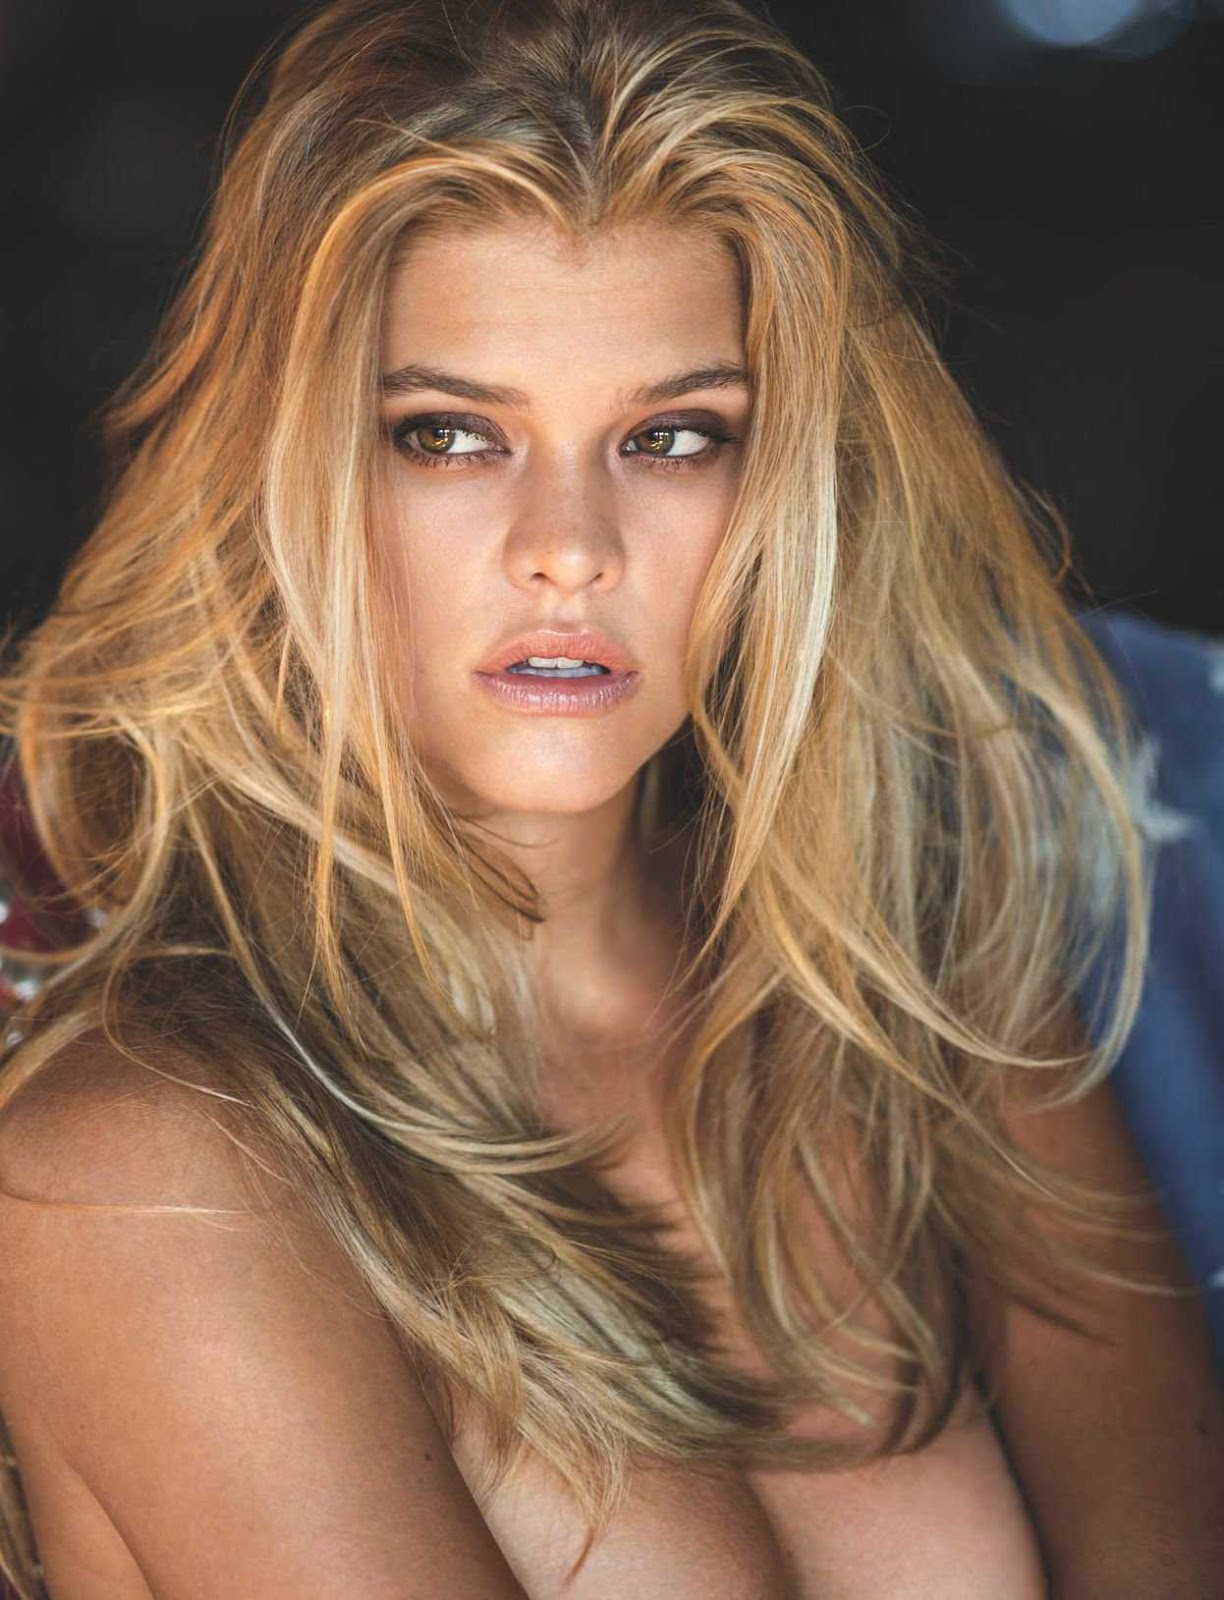 Nina Agdal strips down for Maxim Australia July 2017